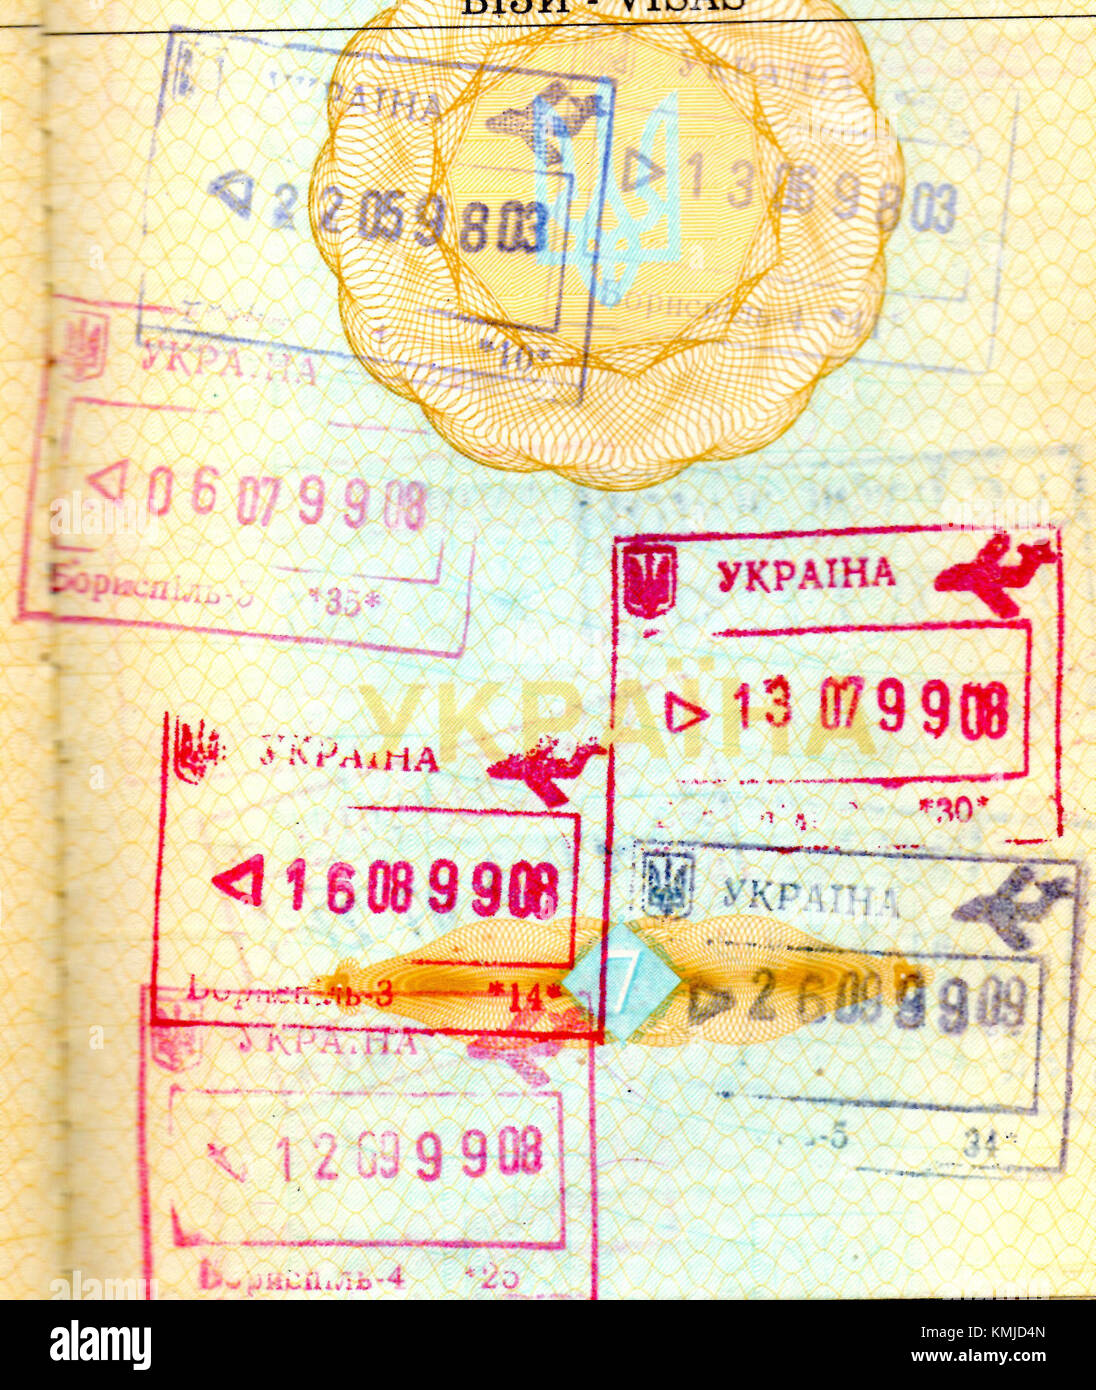 Boryspil airport border stamps (1998-1999) - Stock Image